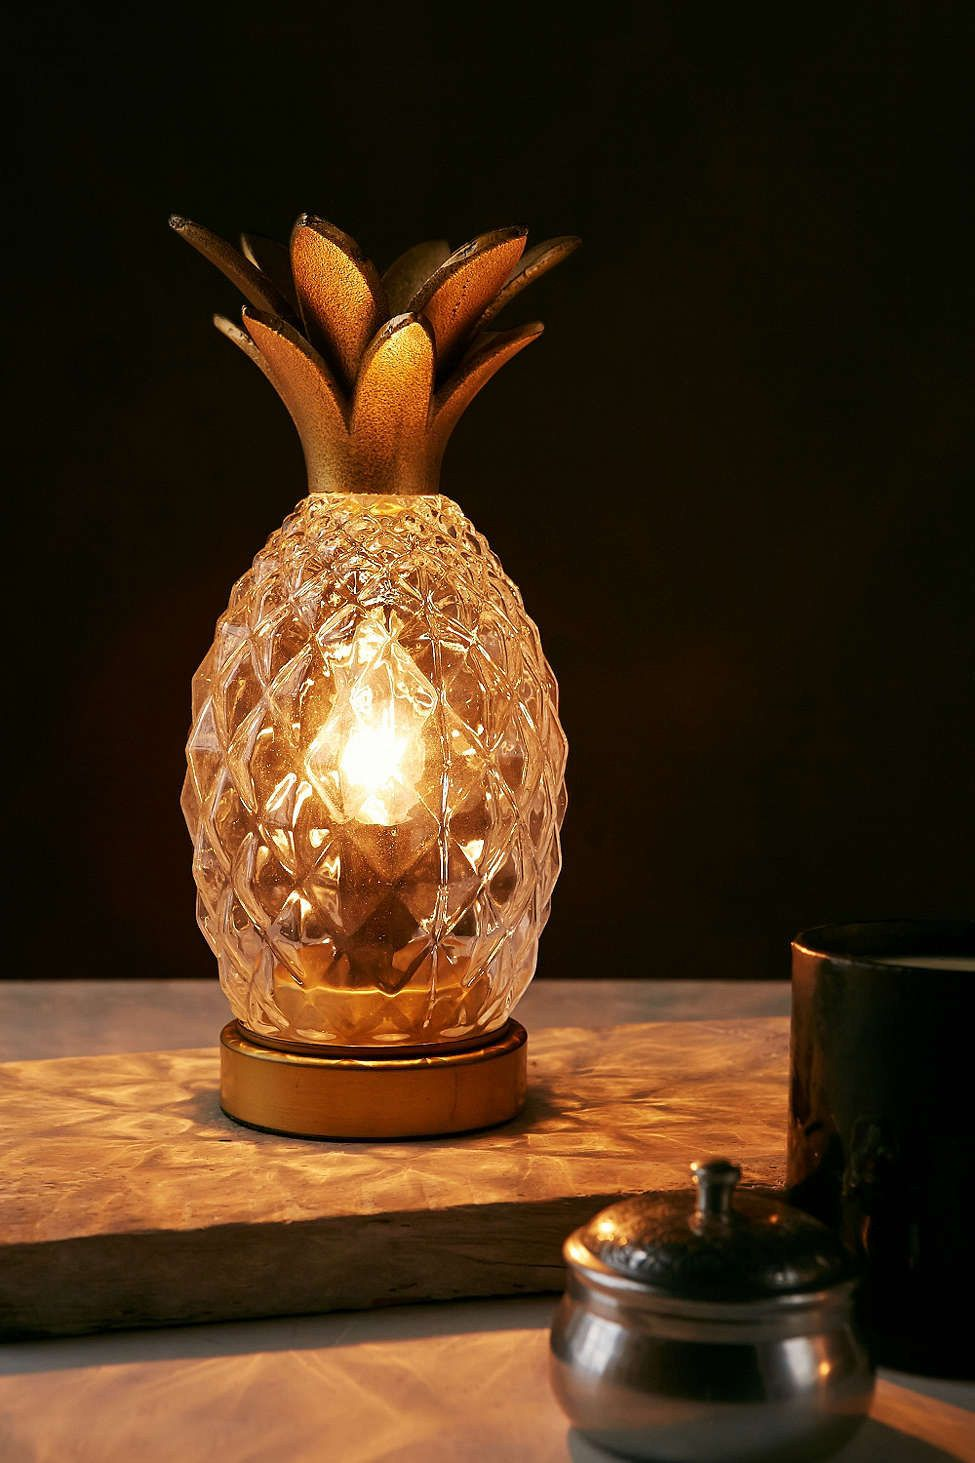 products for people who are super excited about pineapples